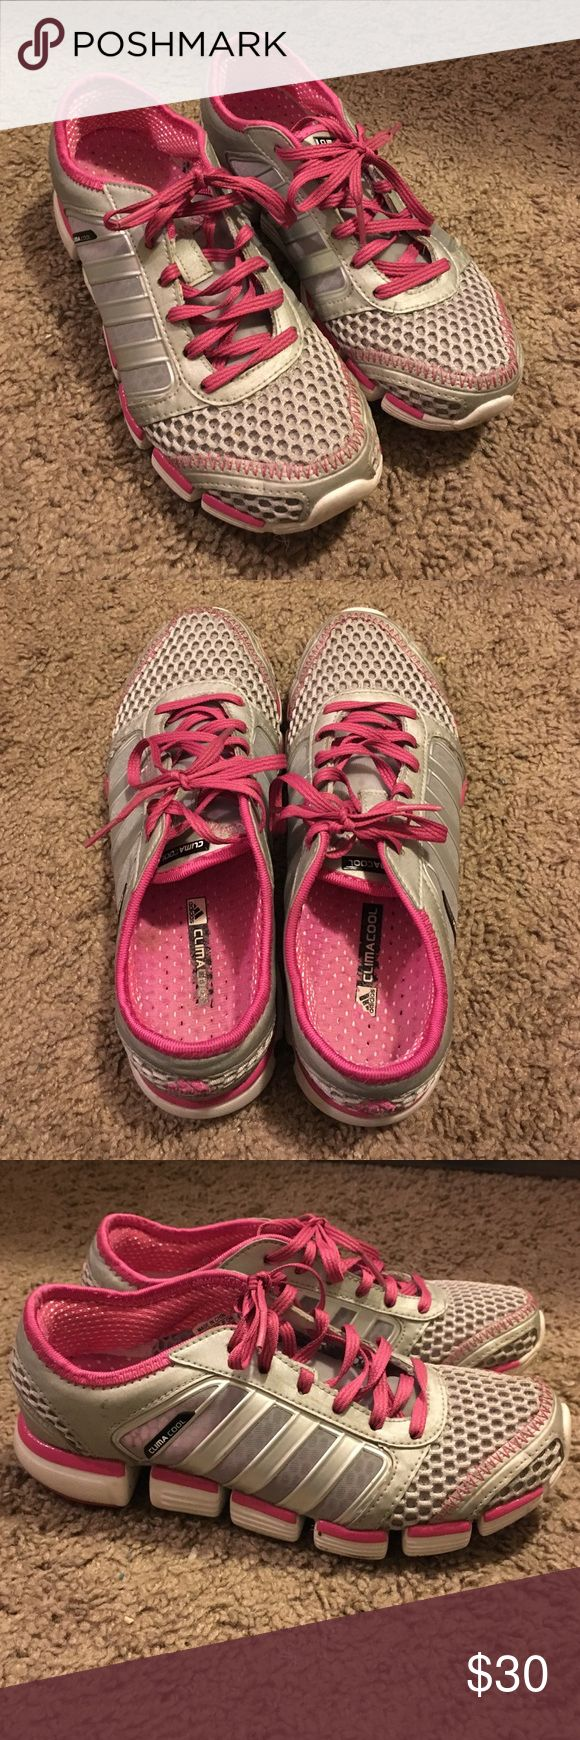 Adjdas ClimaCool Sneakers Pink and silver lightweight Adidas ClimaCool sneakers. Minimal wear, still in great condition. Size 6, great for working out or casual wear due to their awesome breathability! Offers welcome Adidas Shoes Sneakers